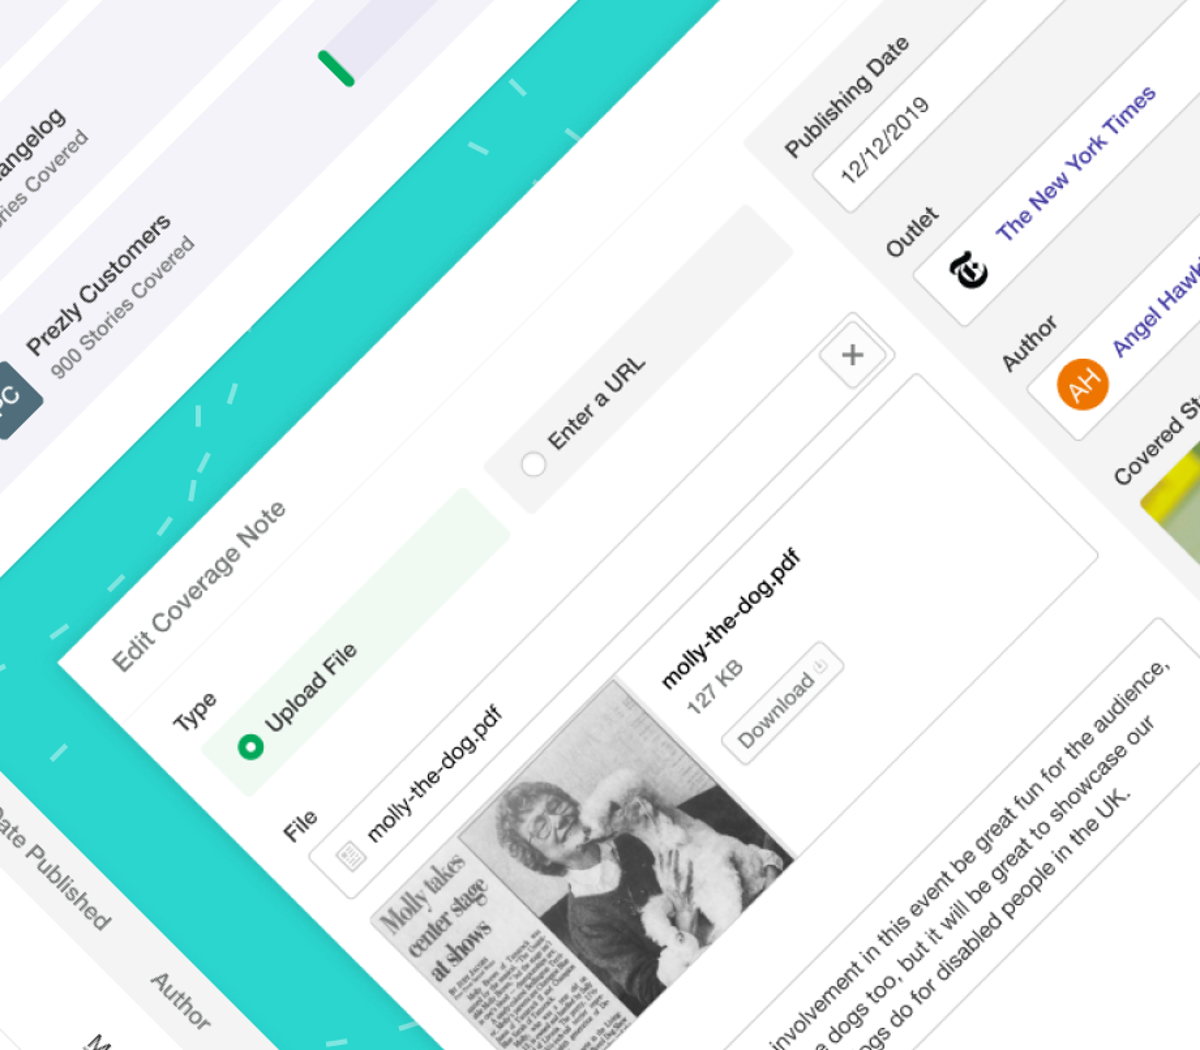 News: Upload, manage & report on your Coverage ✅